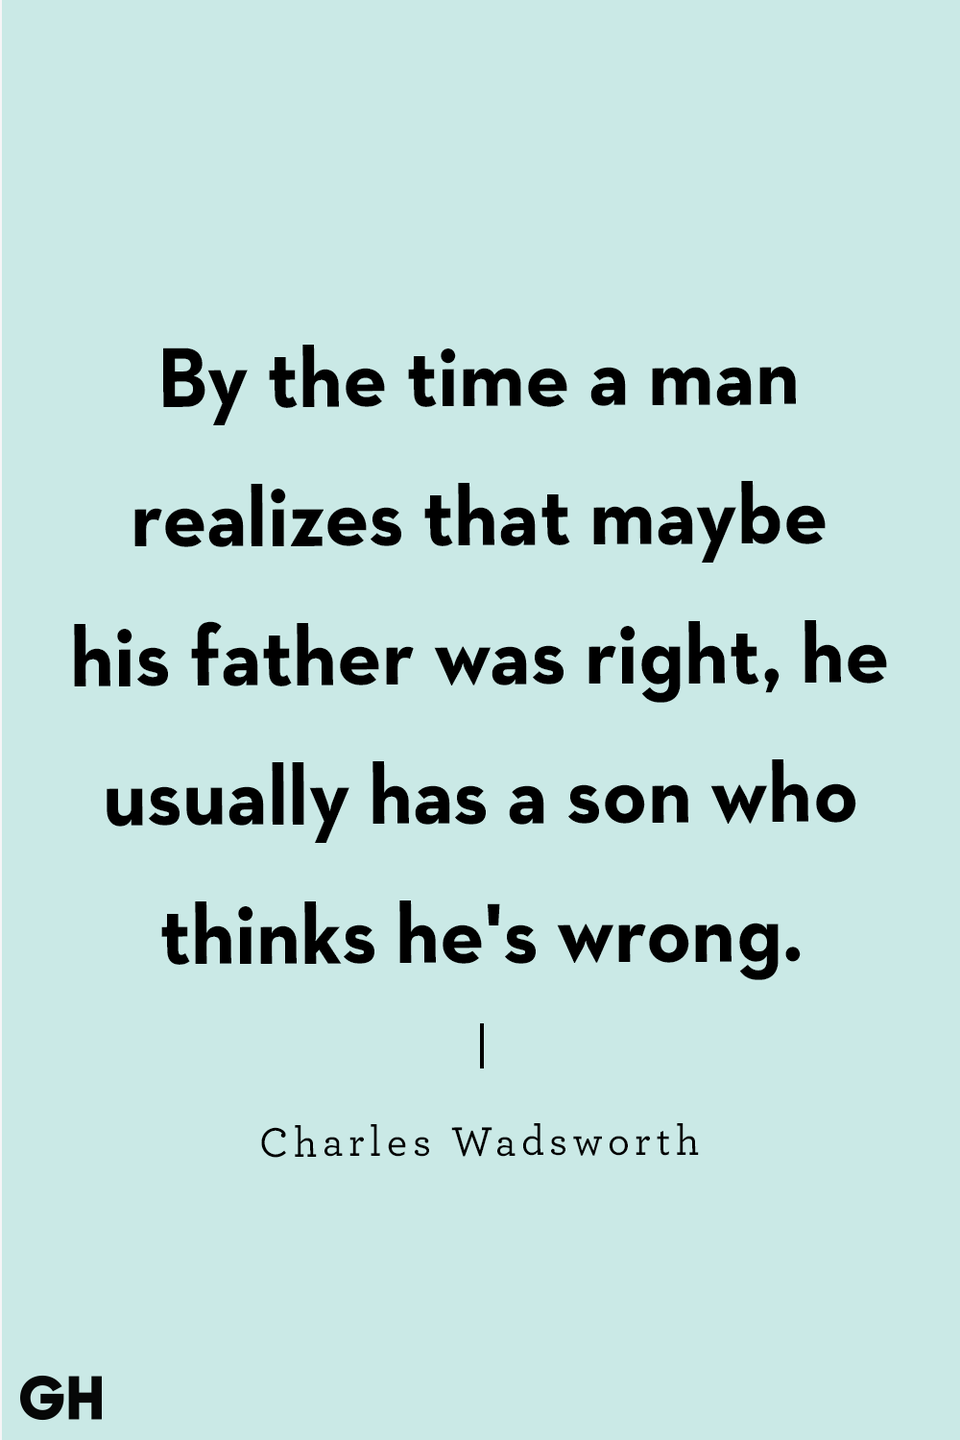 <p>By the time a man realizes that maybe his father was right, he usually has a son who thinks he's wrong.</p>